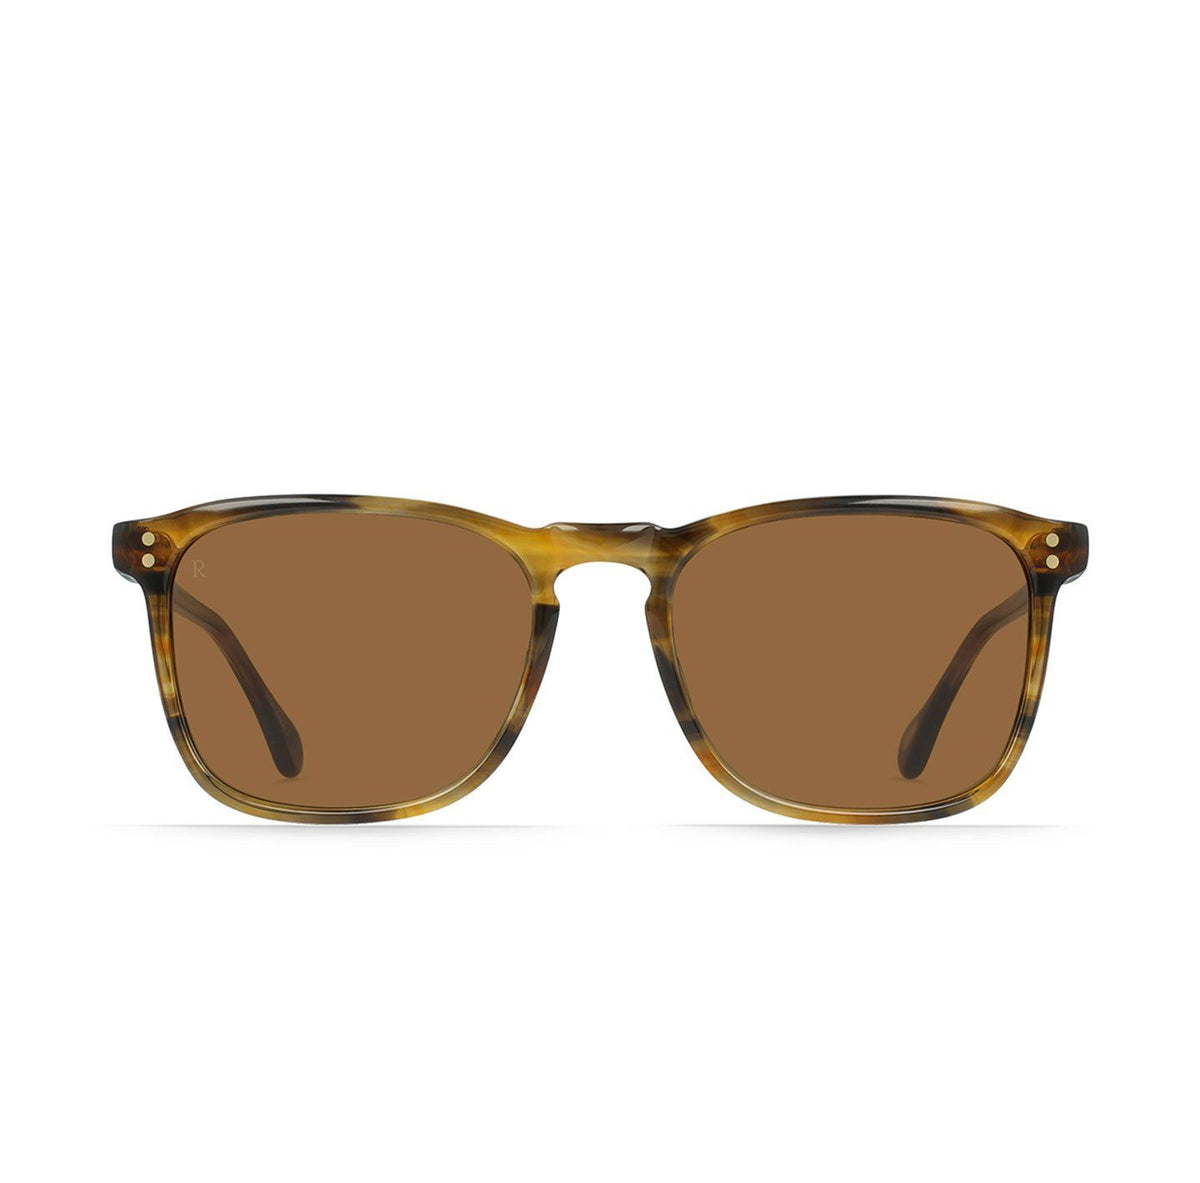 Raen Wiley Groovy Sunglasses